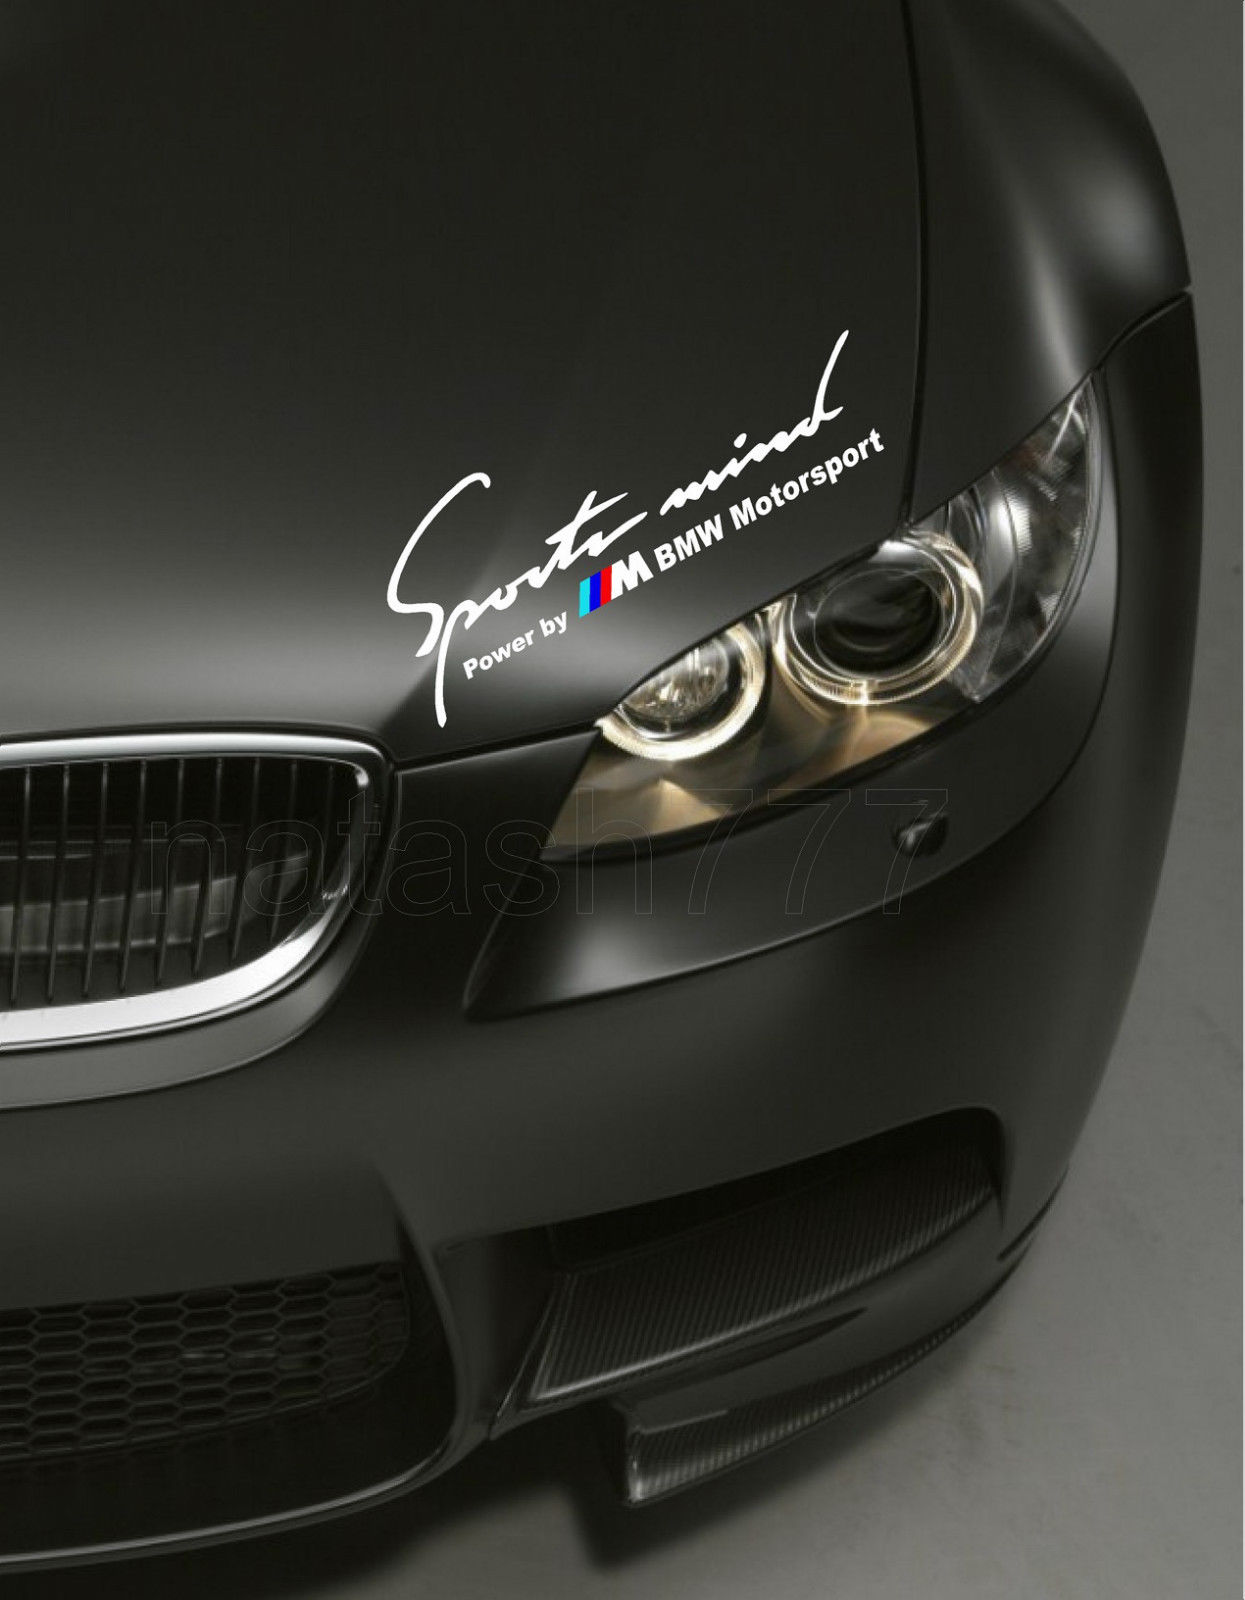 zoom side m mirror bmw listing sport il wrap decals colored fullxfull stripes fit sticker decal